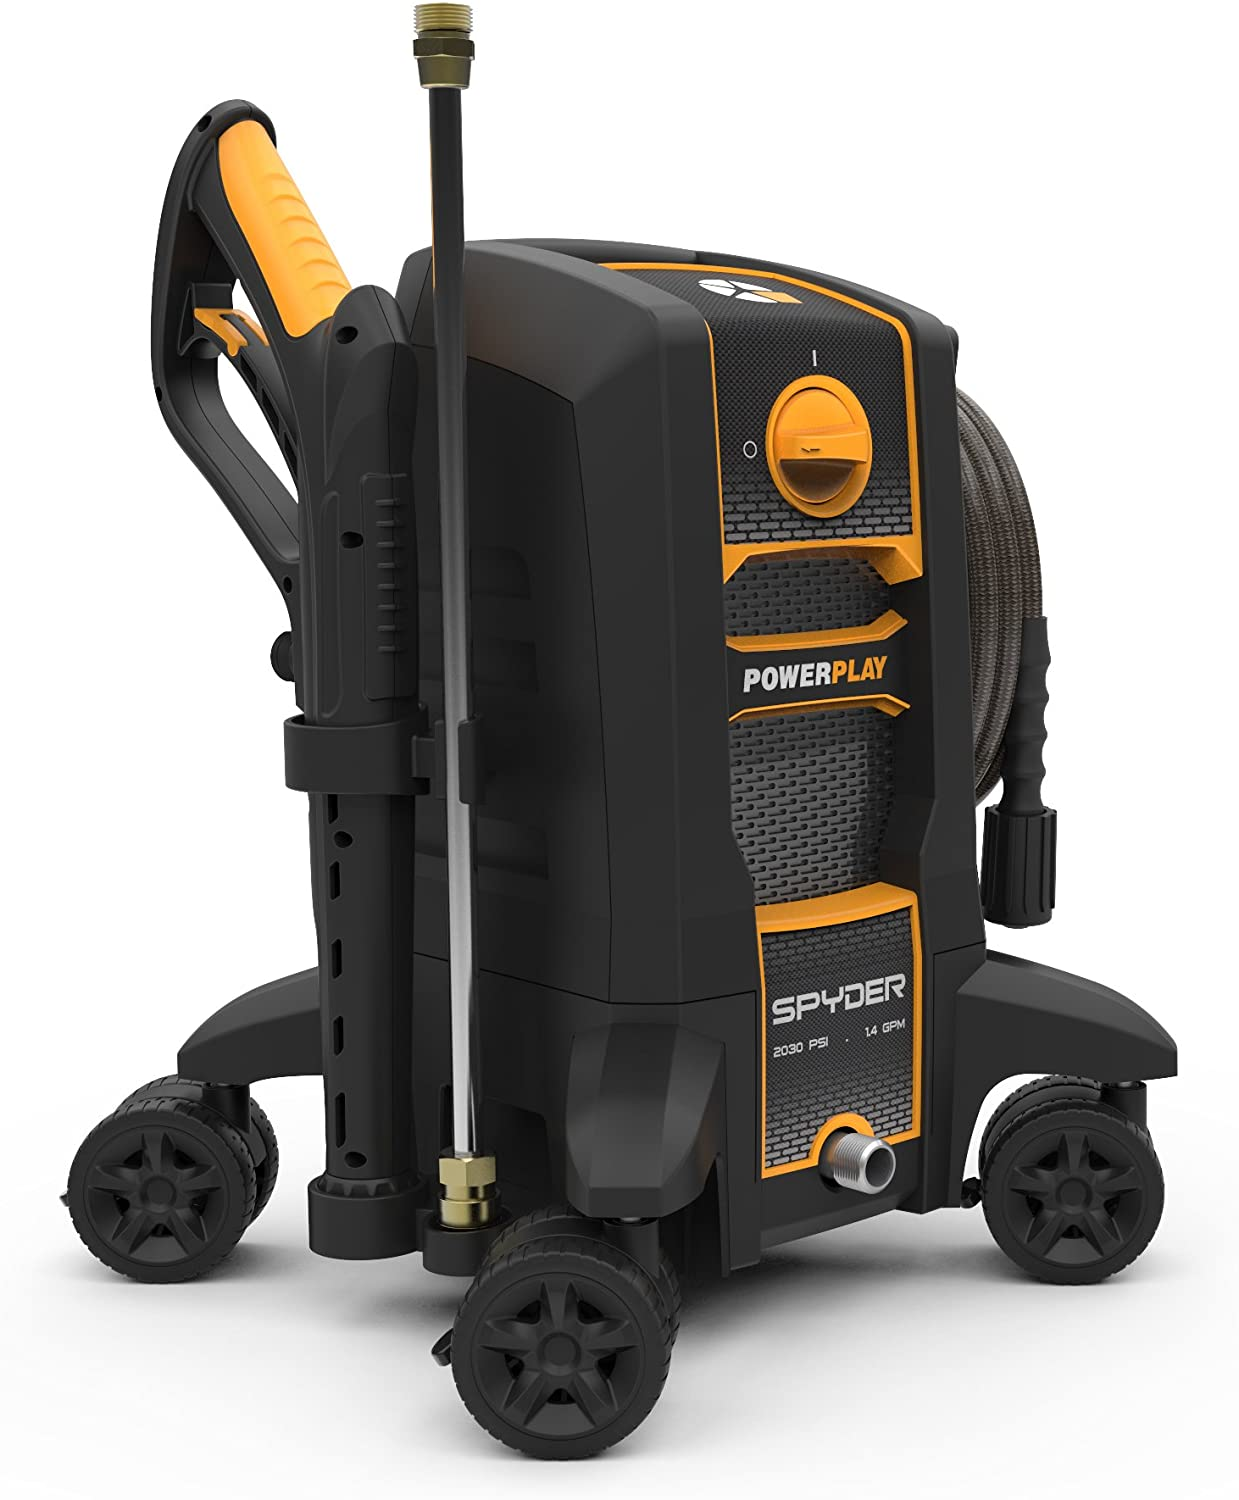 Powerplay SPY2030 Spyder 2030 psi Axial Pump Electric Pressure Washer